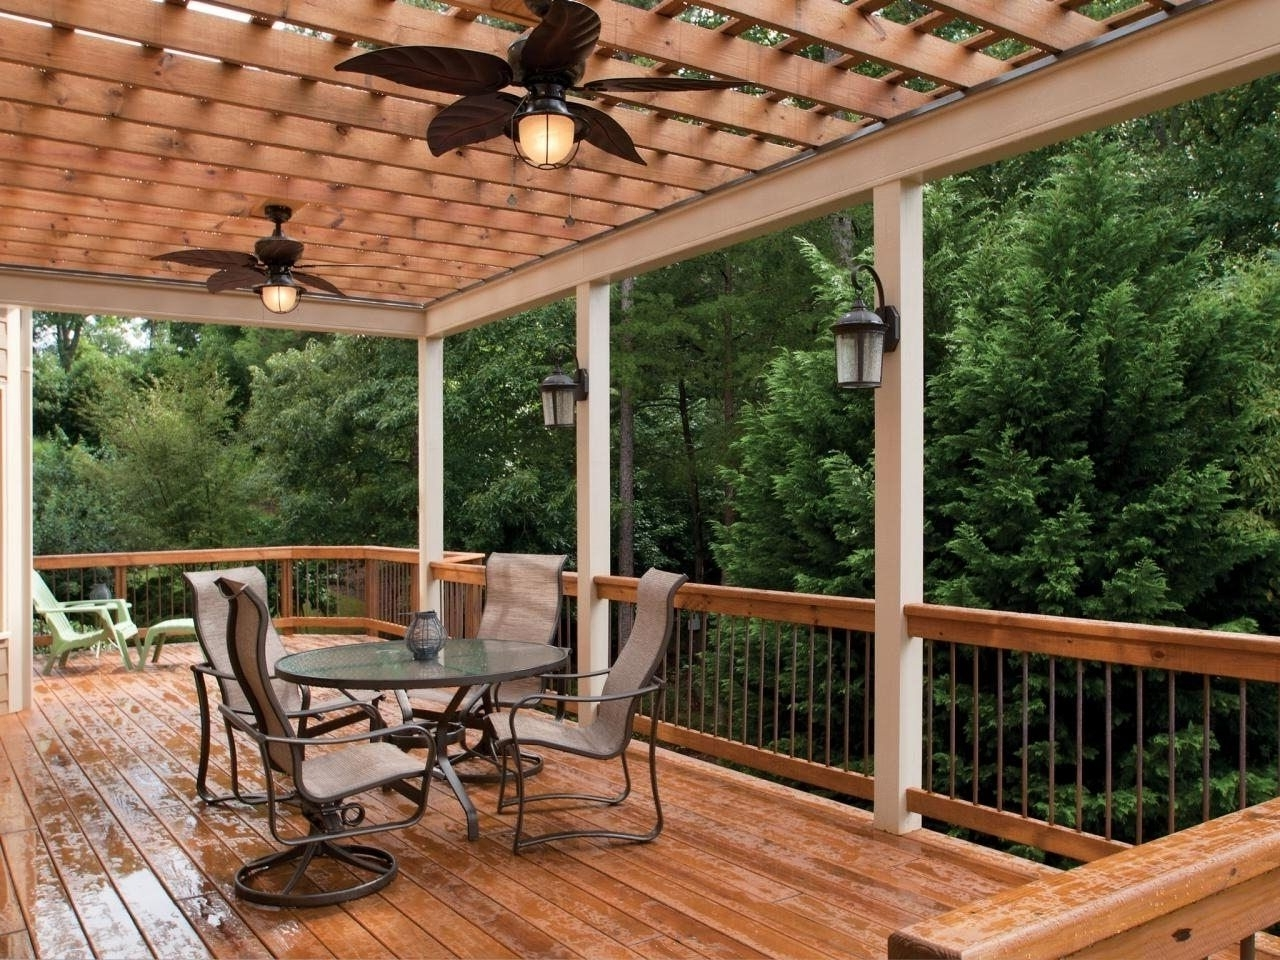 Outdoor Ceiling Fans For Pergola With Well Known Outdoor Pergola Ceiling Fan (View 2 of 20)